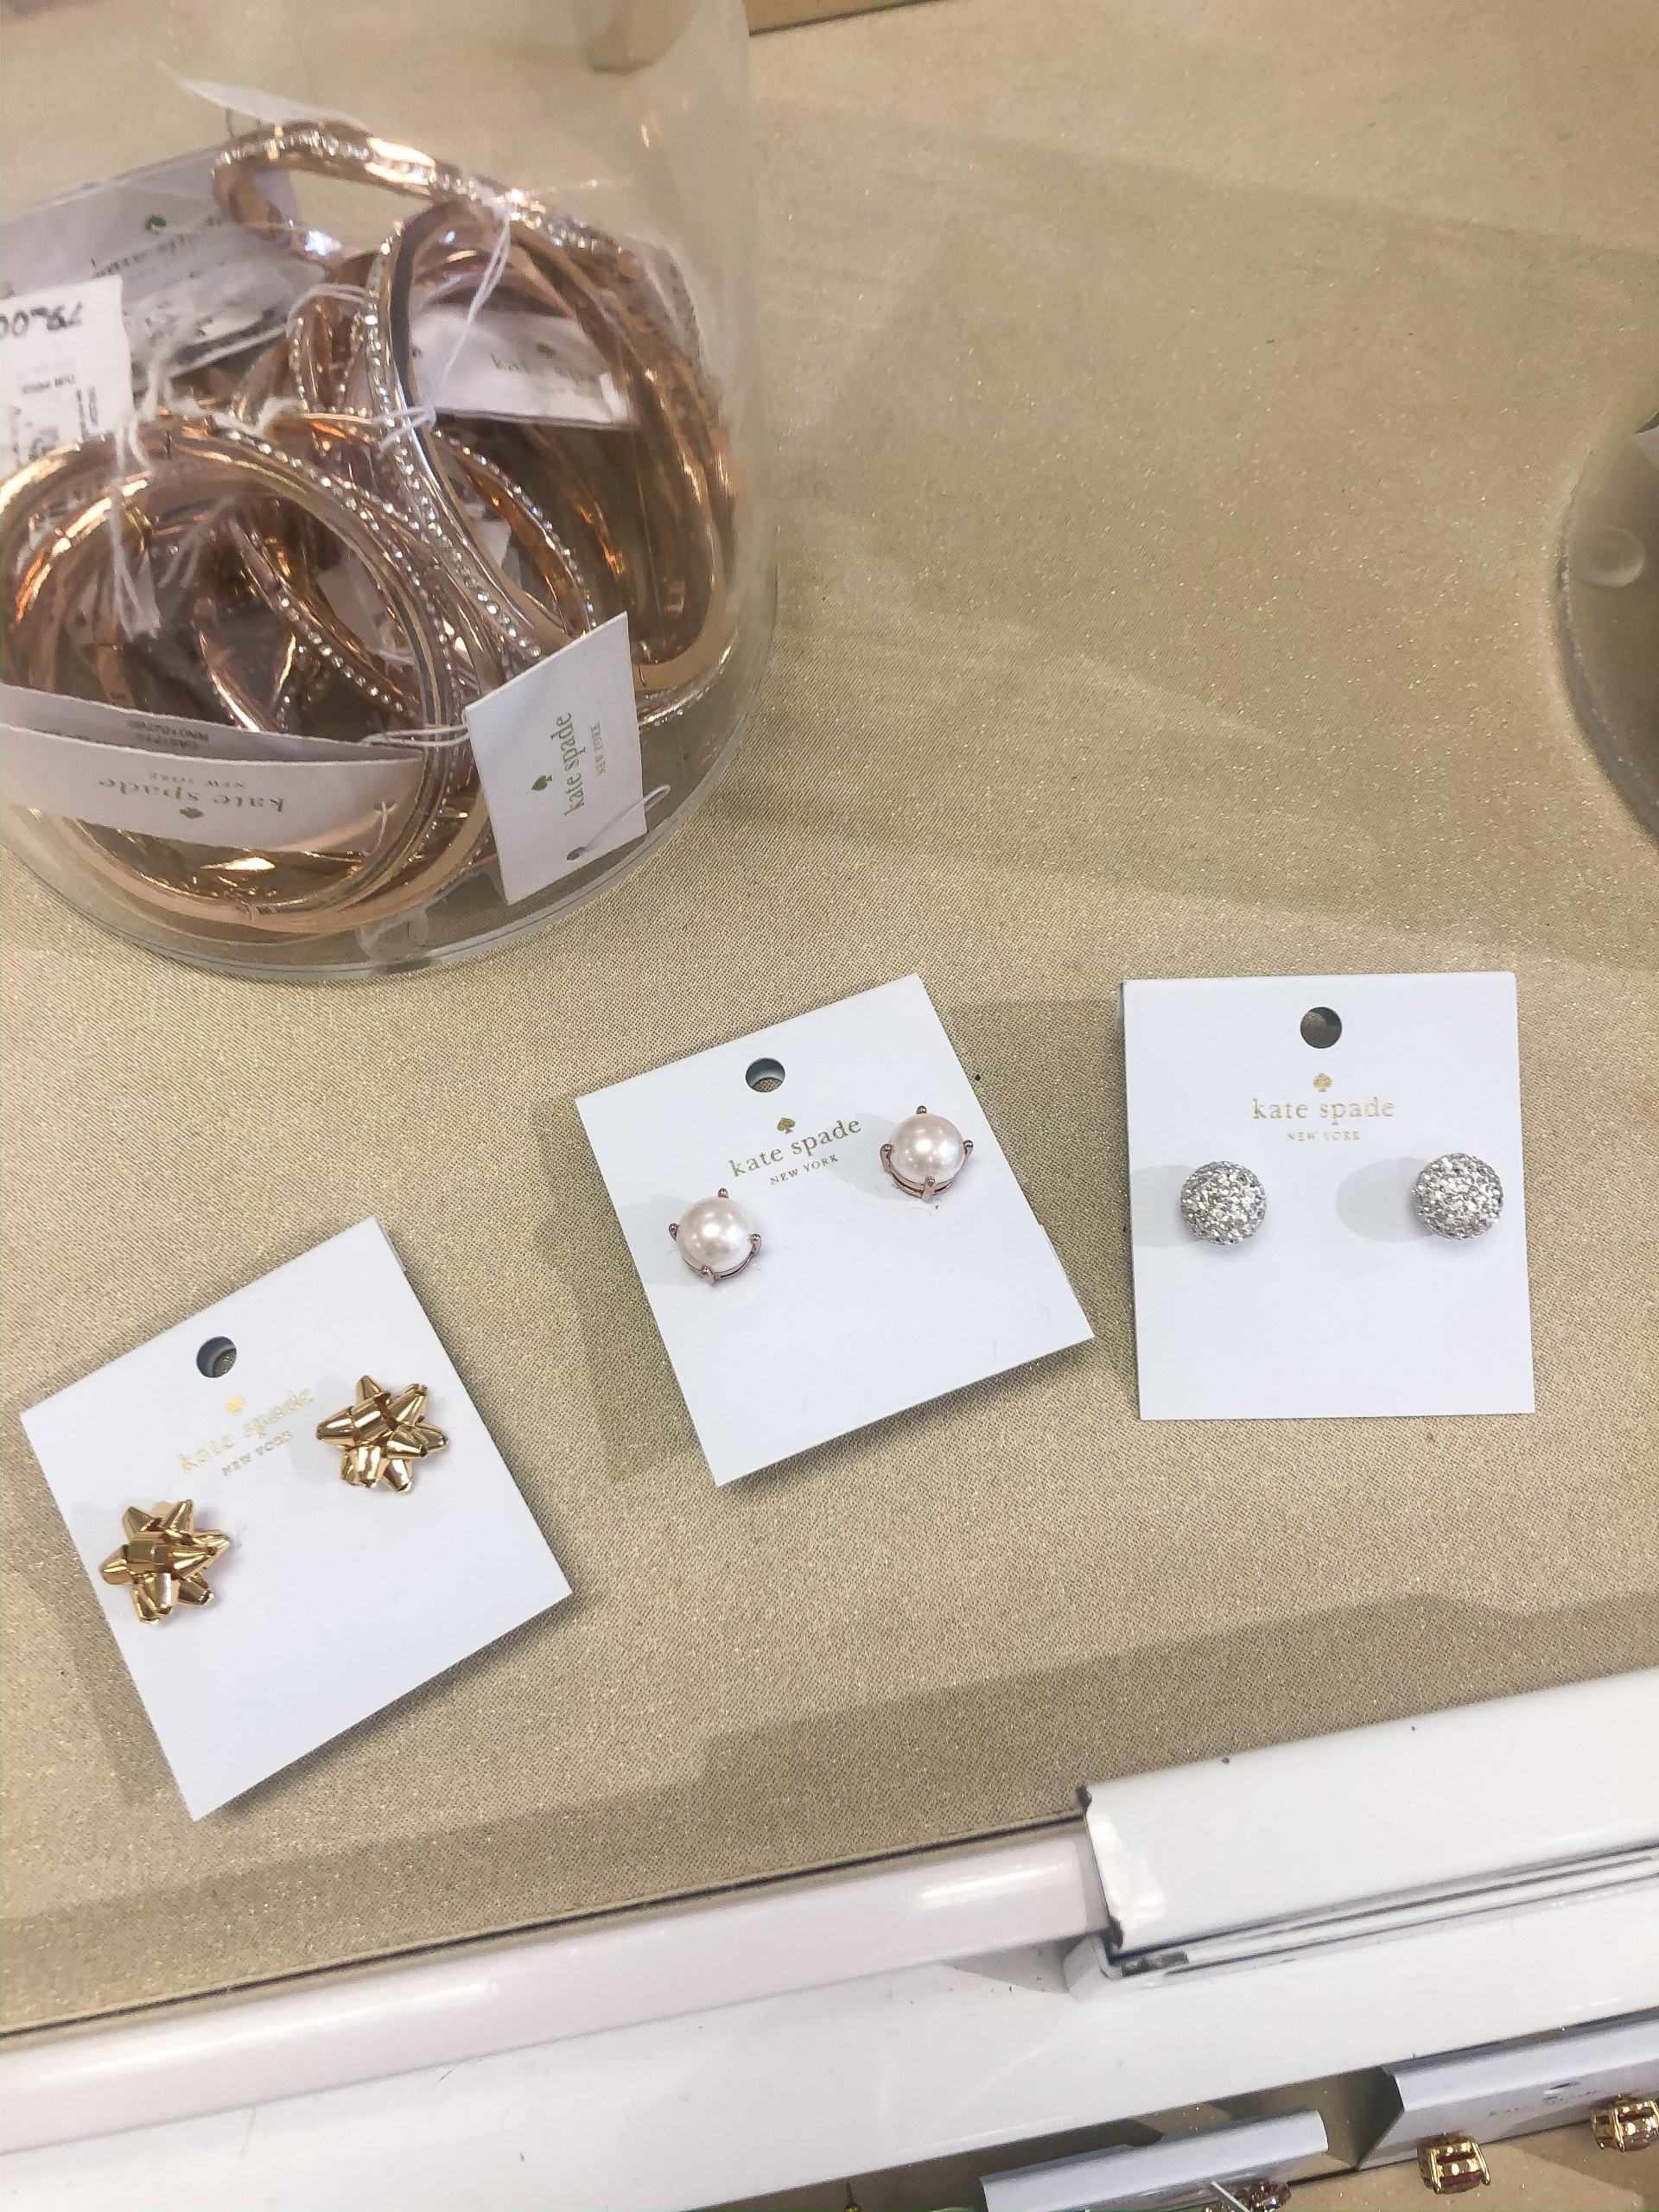 holiday ready waikele premium outlets - shopping at Waikele Premium Outlets - Simon Center Outlets - outlet mall Hawaii - Oahu outlet mall - holiday shopping Hawaii - outlet mall in hawaii - kate spade new york outlet hawaii - kate spade new york holiday earrings